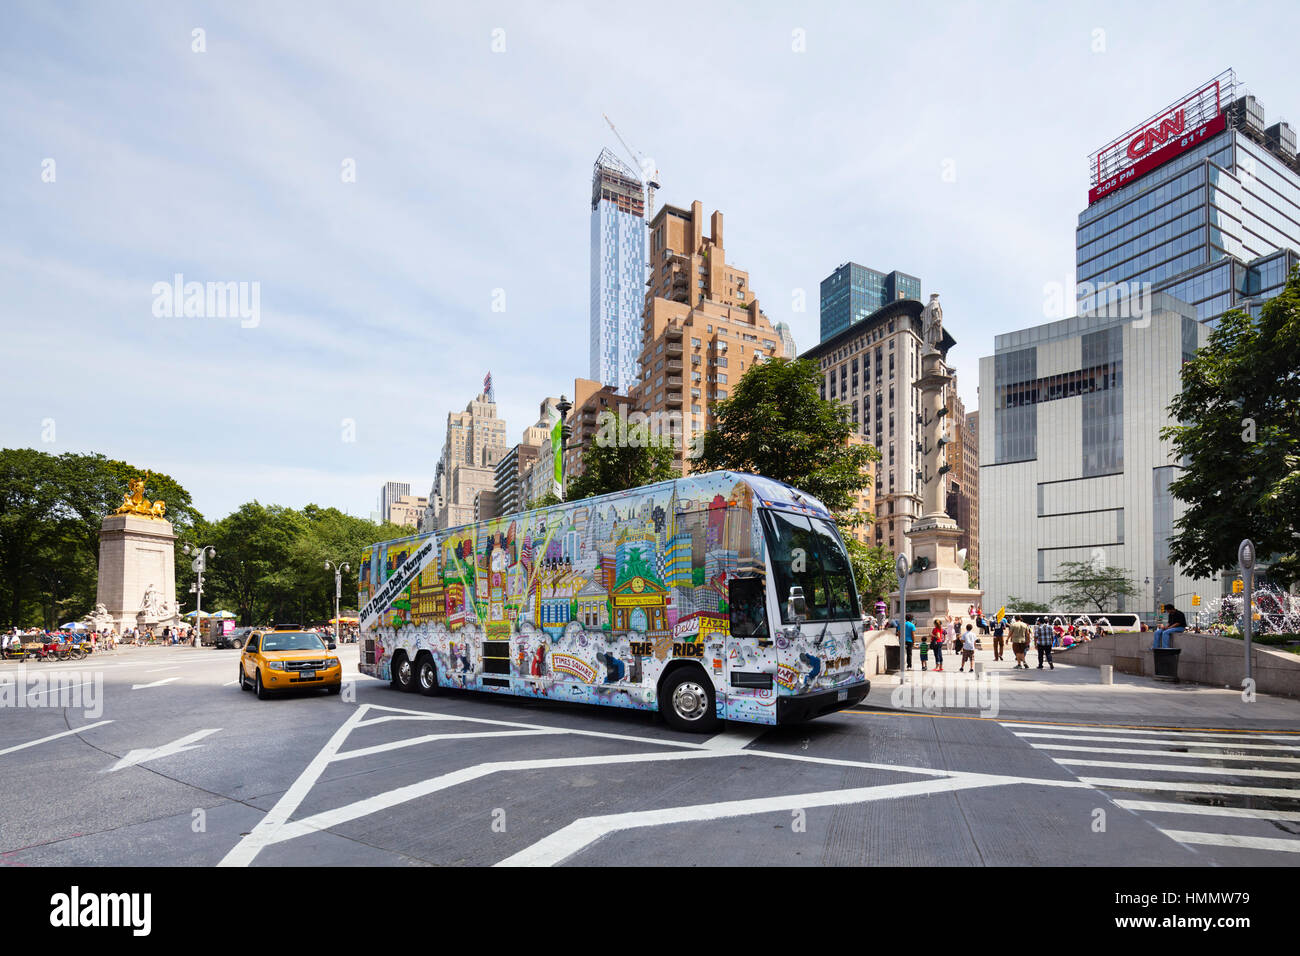 New York City - June 22: Painted bus at Columbus Circle in New York with blue sky and the new One57 tower in the Stock Photo